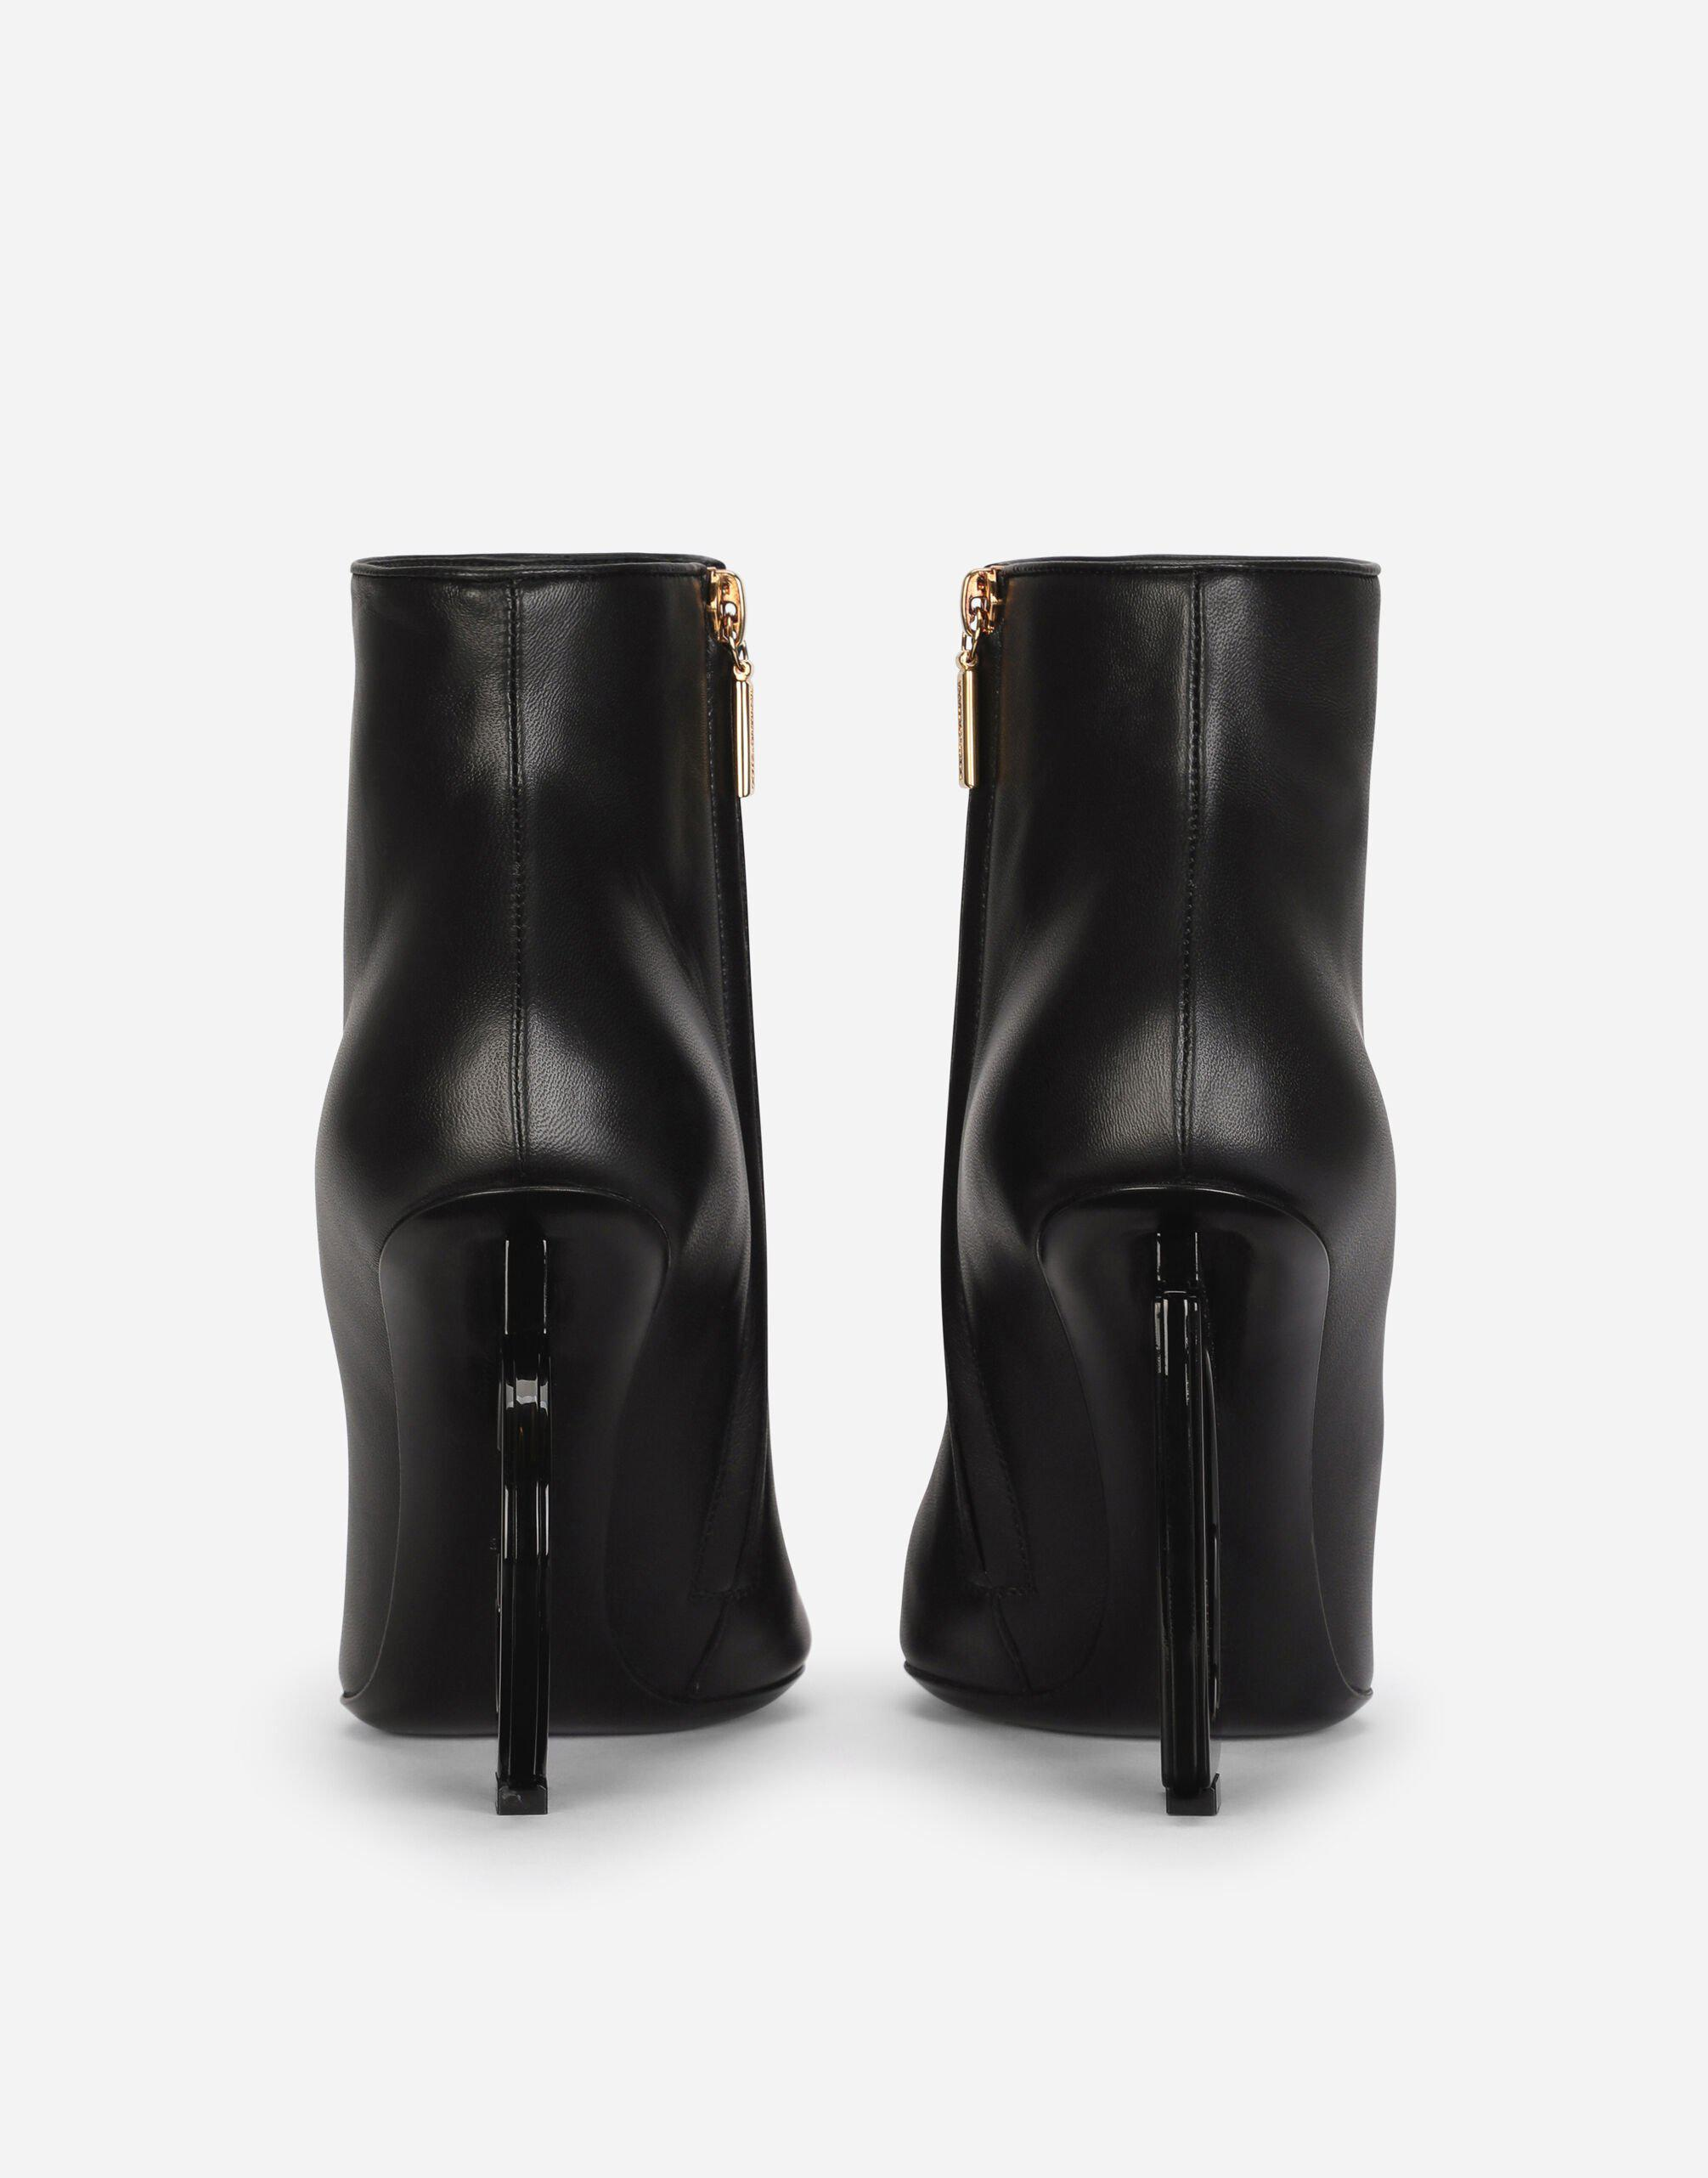 Nappa leather ankle boots with DG heel 2